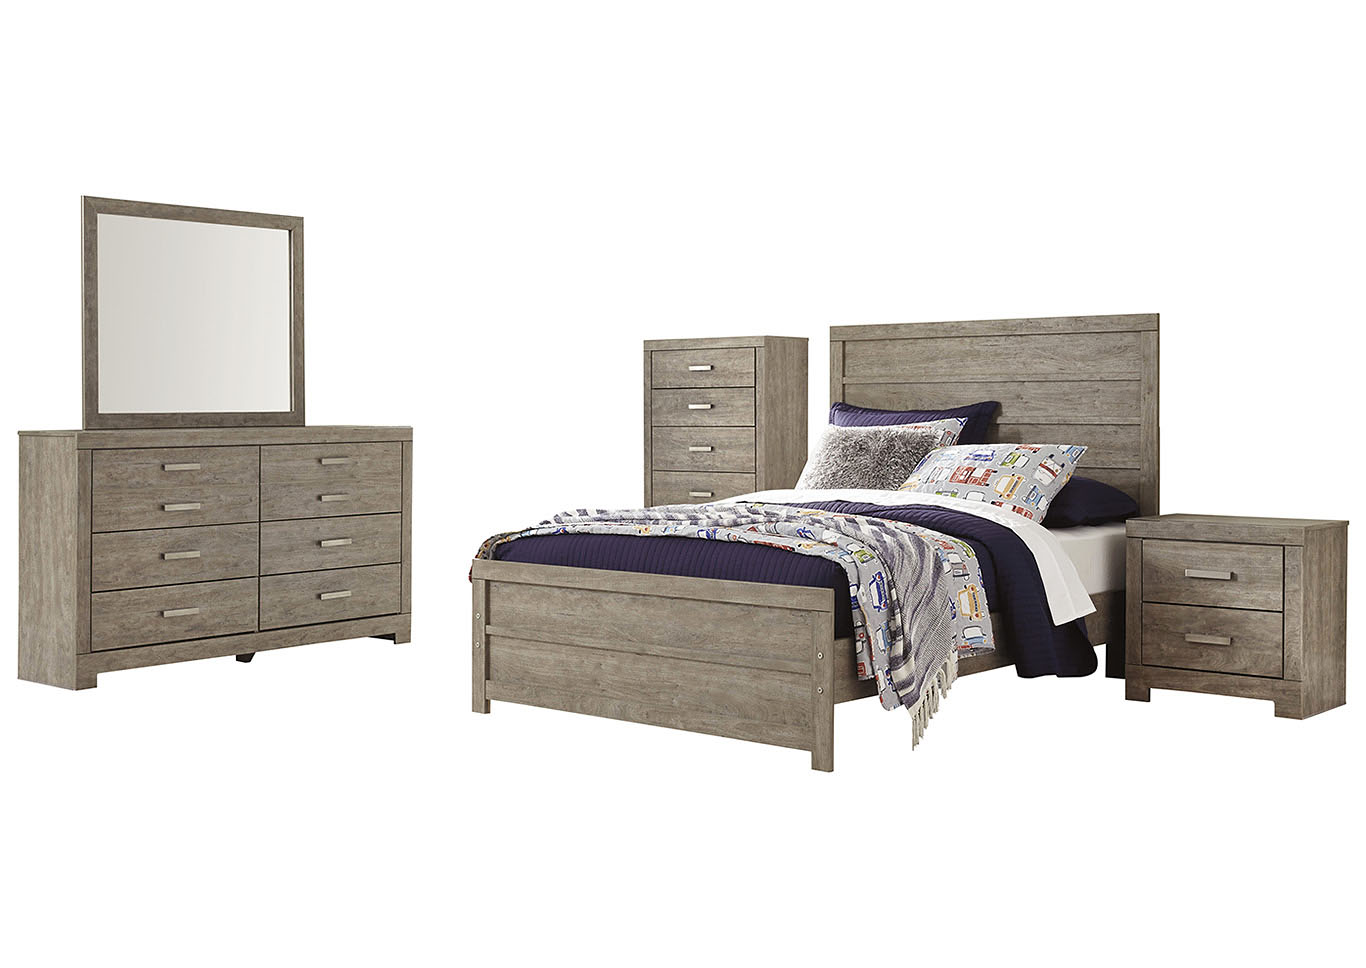 Culverbach Gray Full Panel Bed and Dresser w/Mirror,Signature Design By Ashley